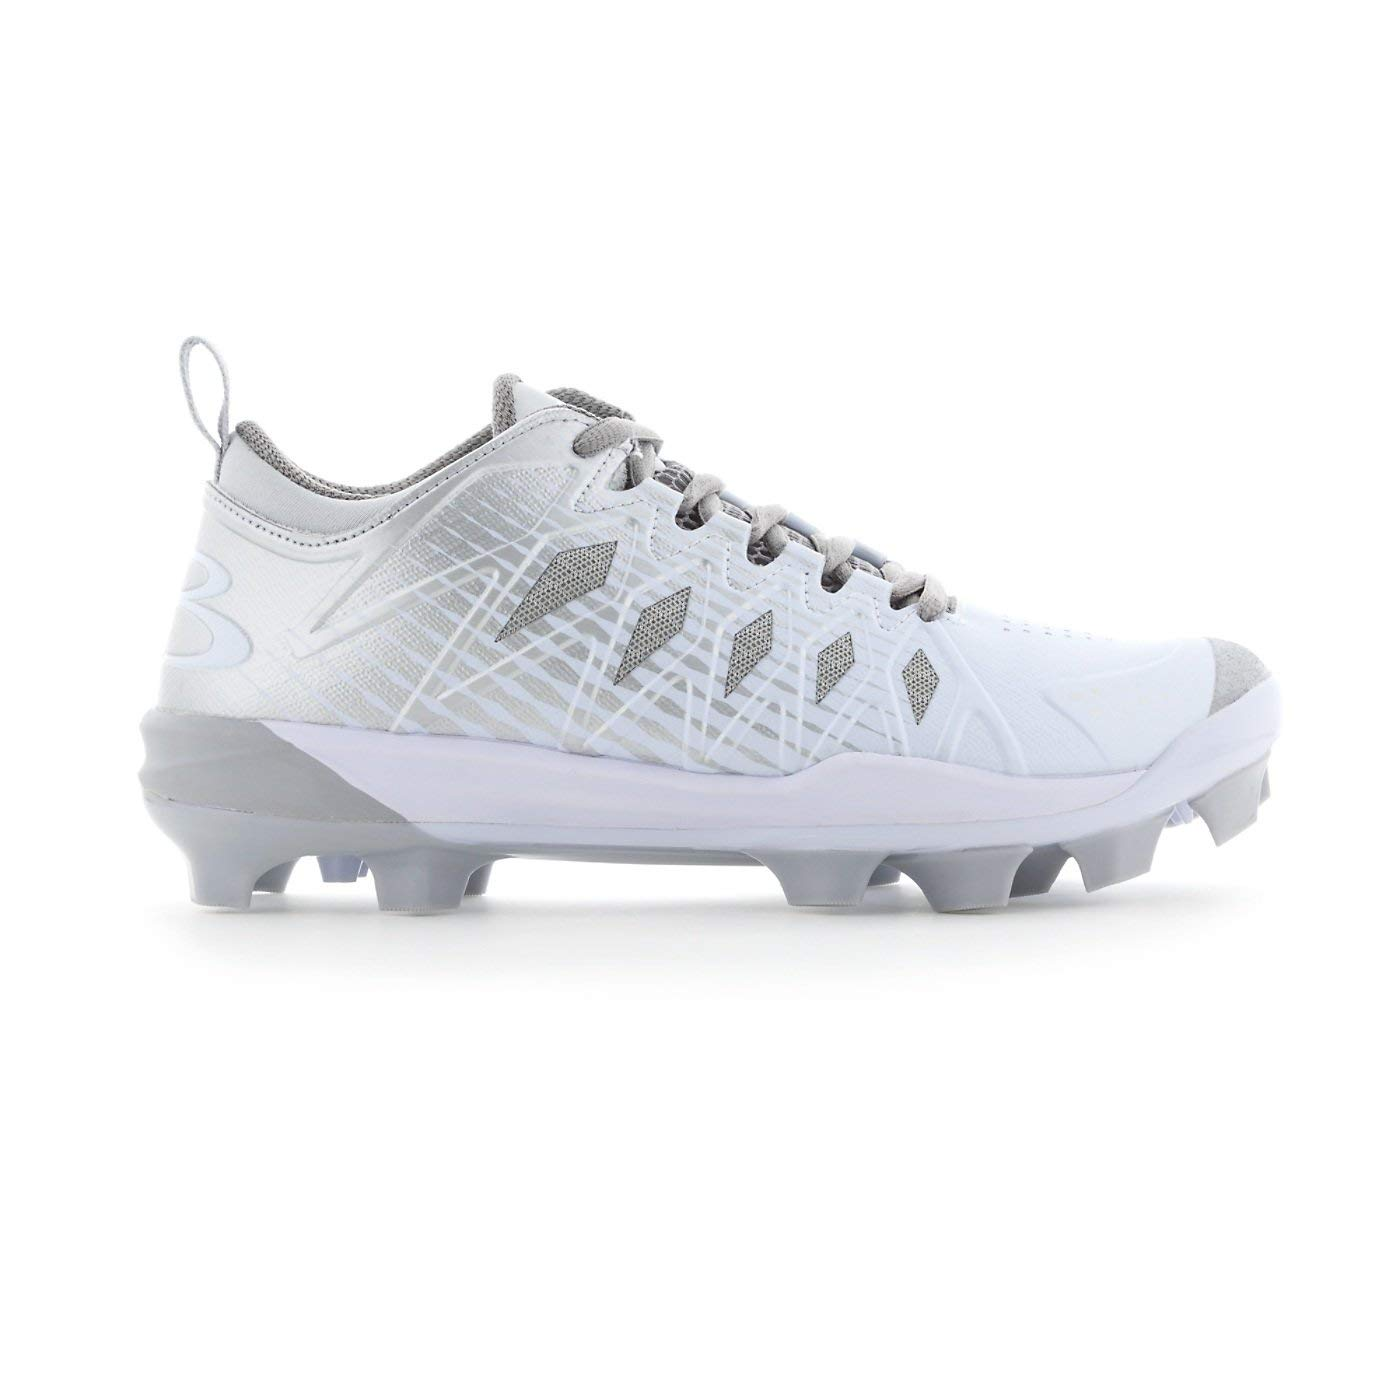 1f45eb69d Get Quotations · Boombah Women s Squadron Molded Cleats - 12 Color Options  - Multiple Sizes